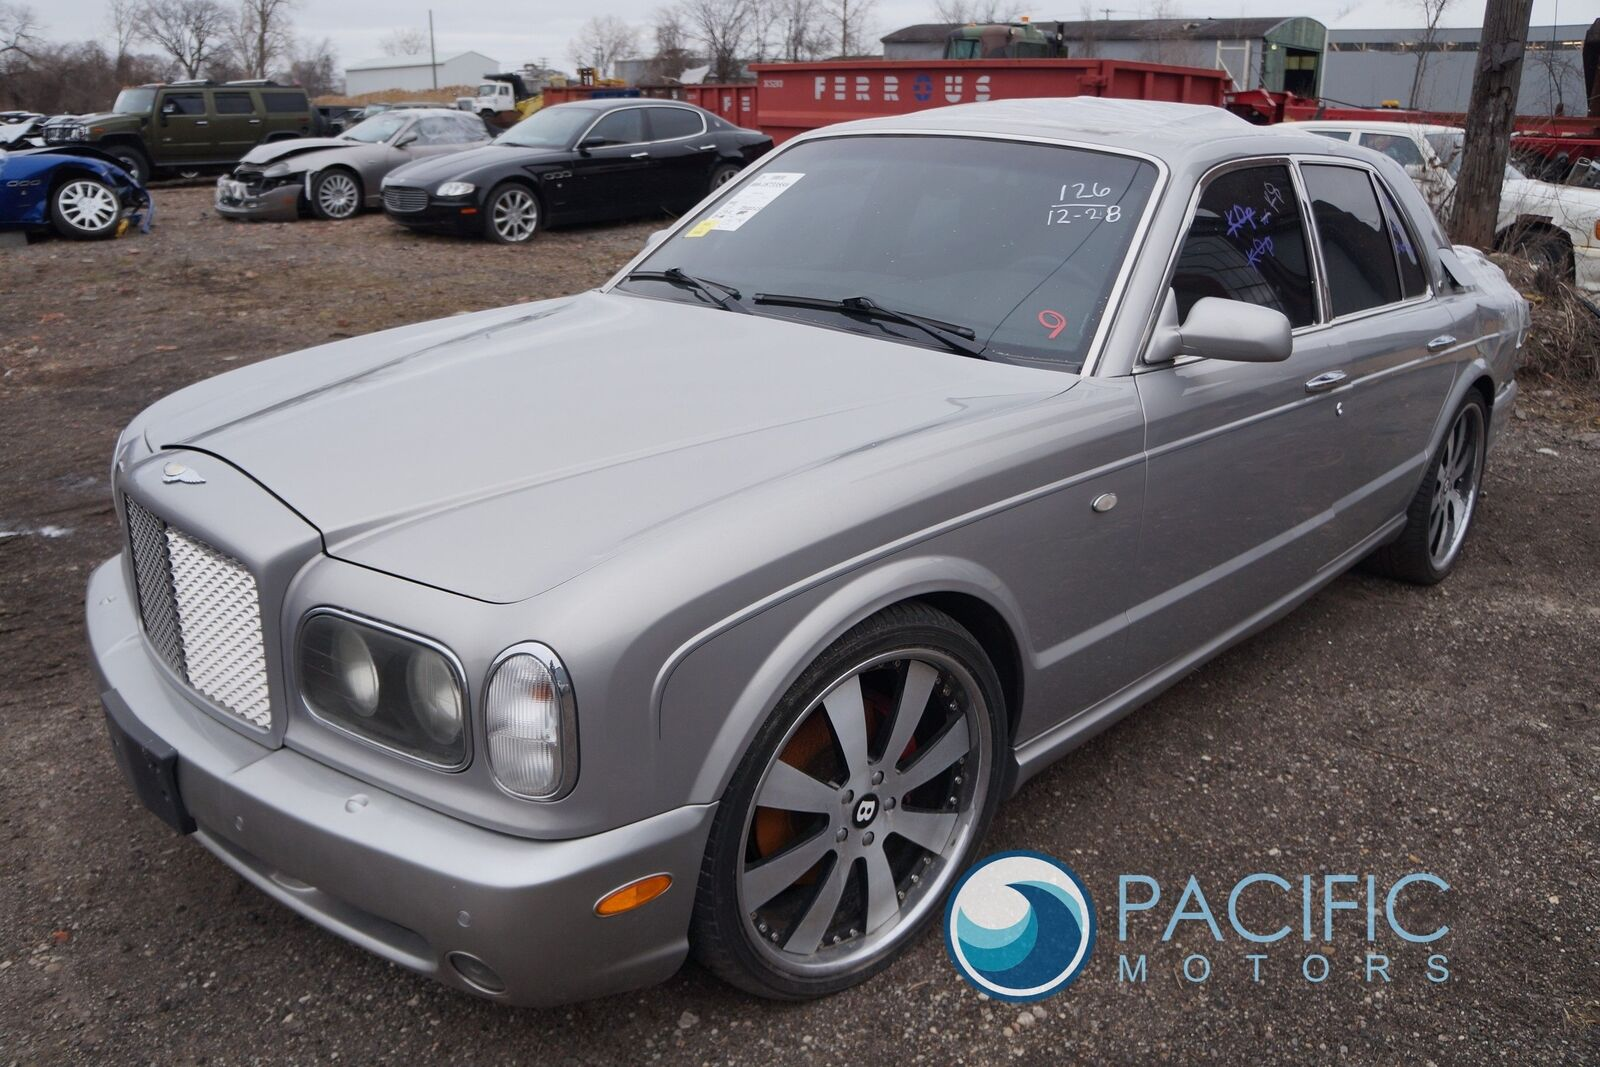 Bentley Arnage Fuse Box Location Trusted Schematics Diagram 2005 Wiring Left Trunk Fusebox Fuseboard Relay Panel Pm55189pa Kia